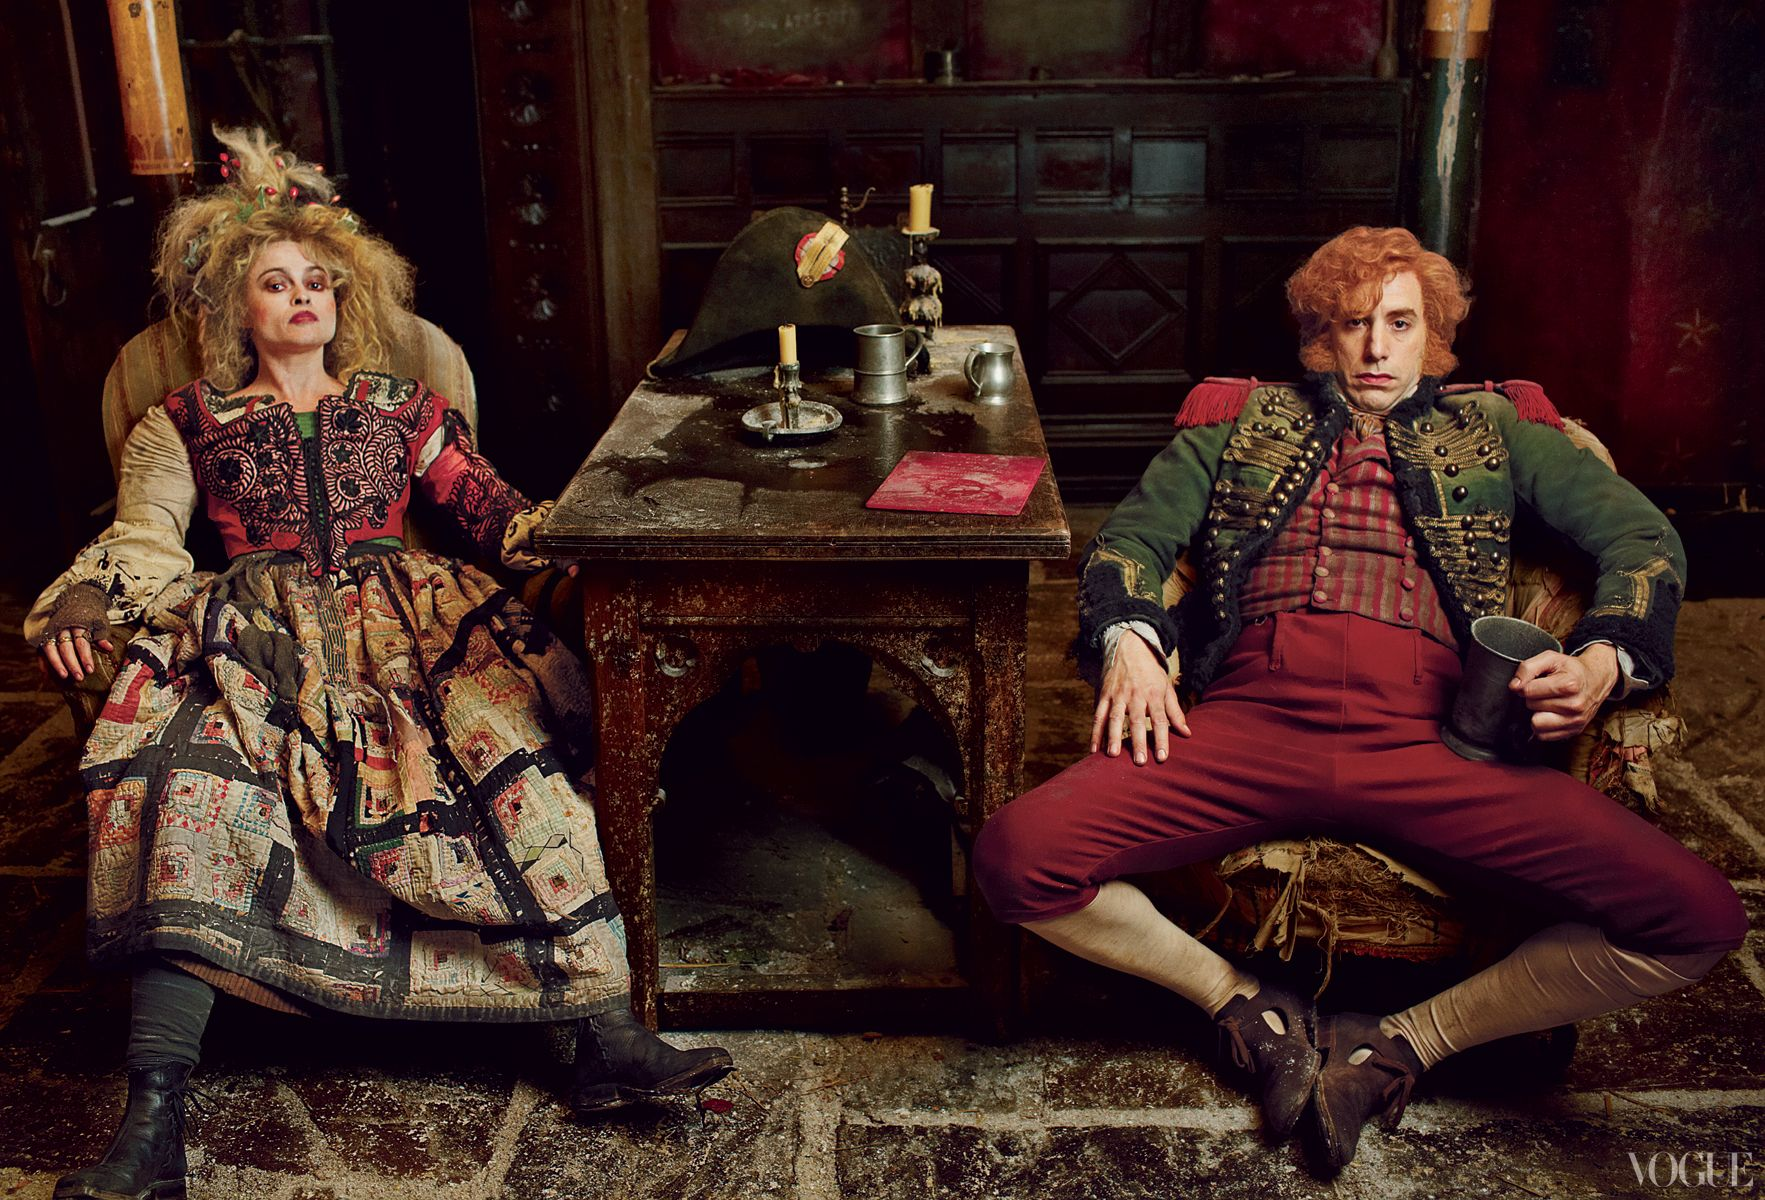 Helena Bonham Carter and Sacha Baron Cohen star as the wicked Madame and Monsieur Thénardier, who enslave Cosette after the death of her mother, Fantine, and exploit others at every opportunity.    Photographed by Annie Leibovitz